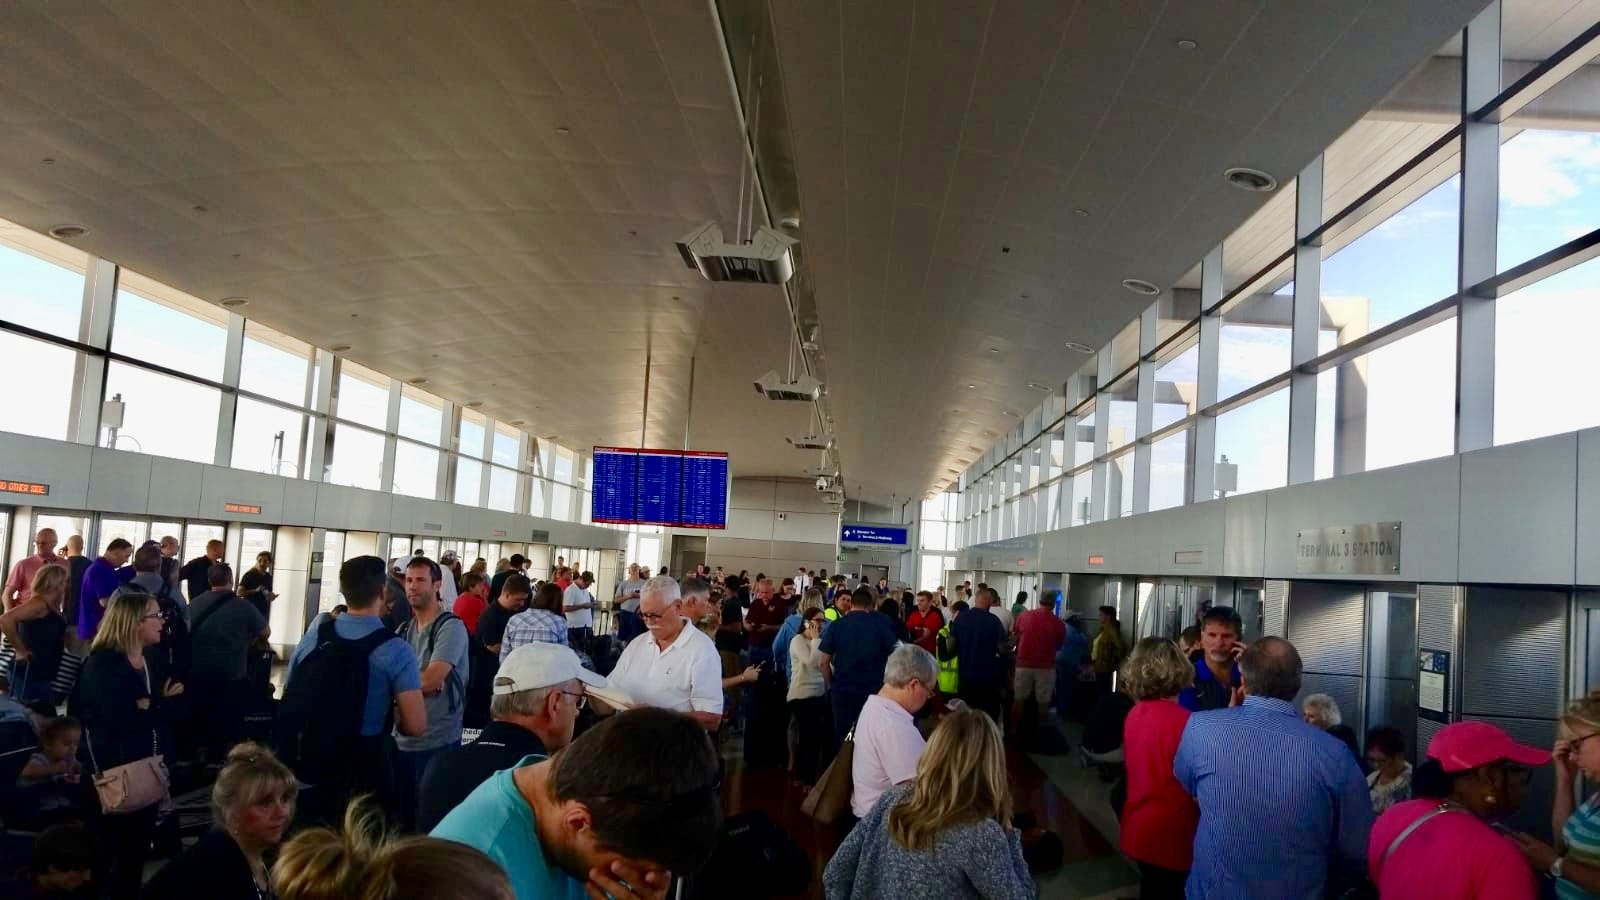 Man fined $52 for causing shutdown at Phoenix airport terminal   USA Today